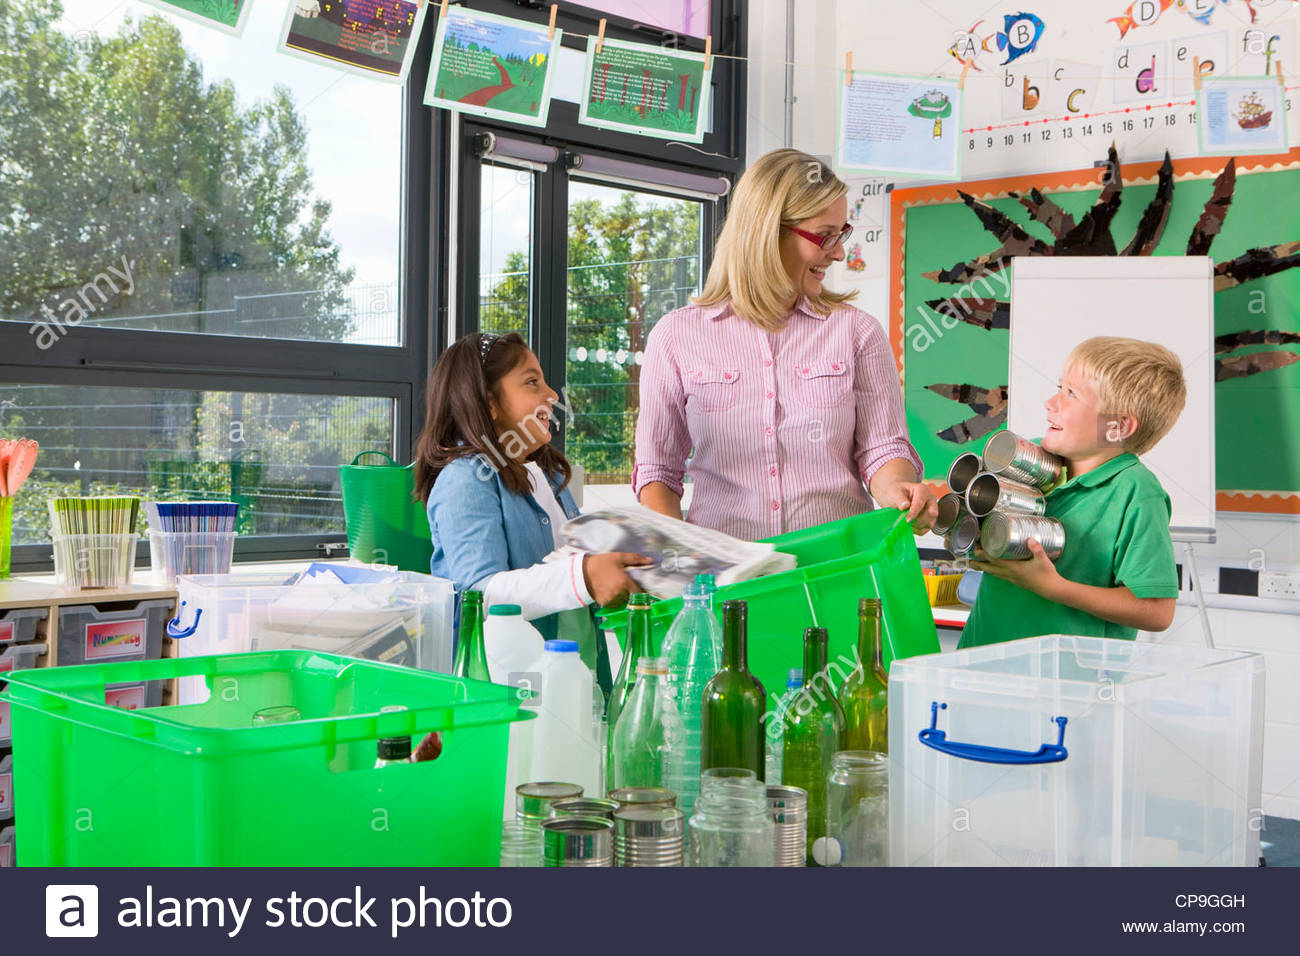 Teacher and students sorting recyclables together in classroom - Stock Image